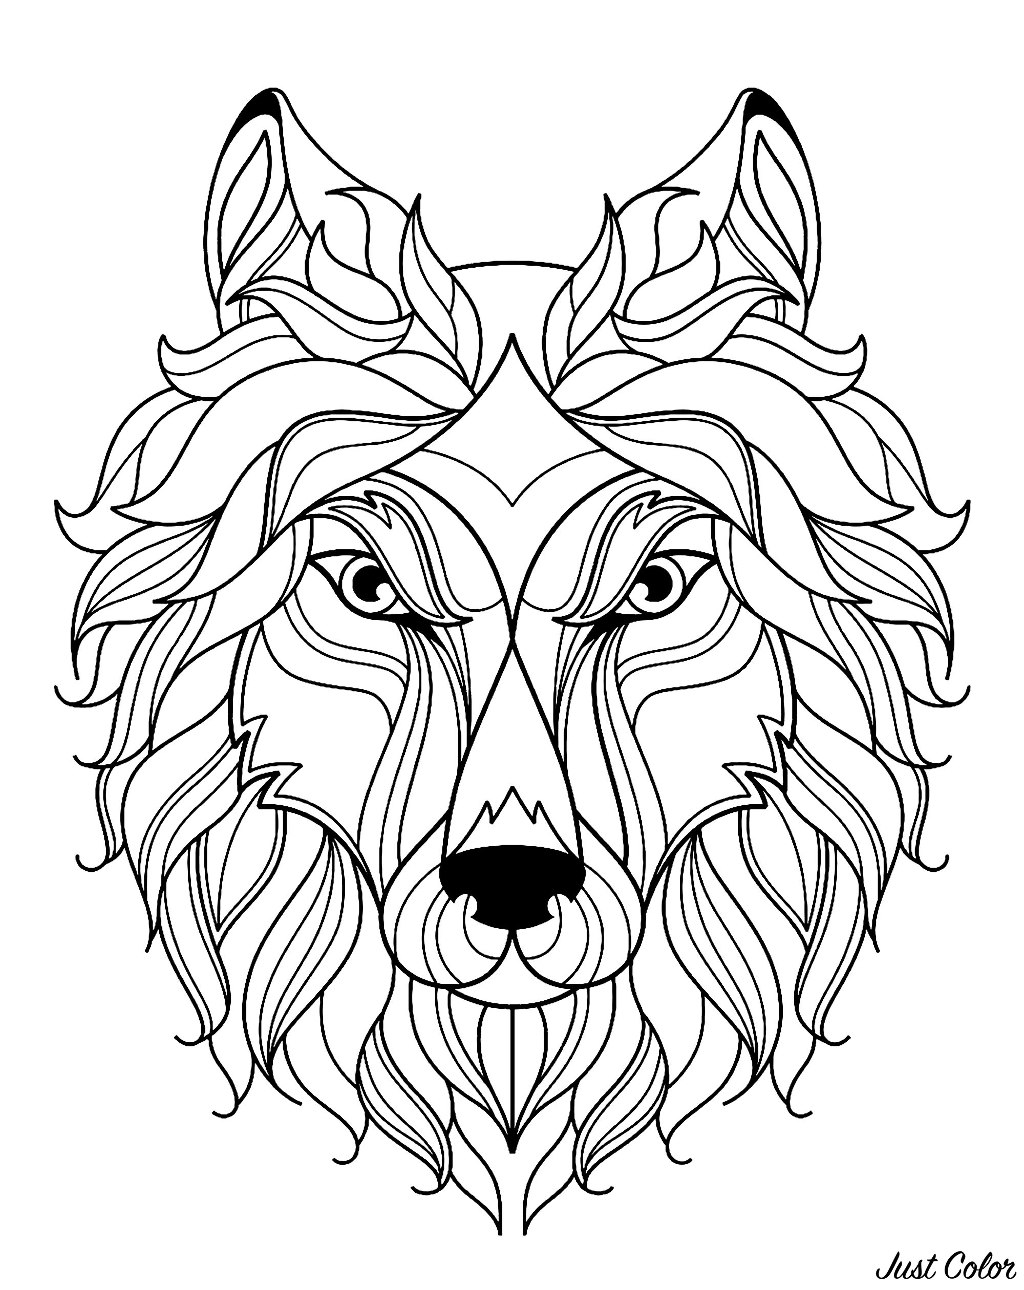 Wolves To Color : wolves, color, Simple, Wolves, Adult, Coloring, Pages